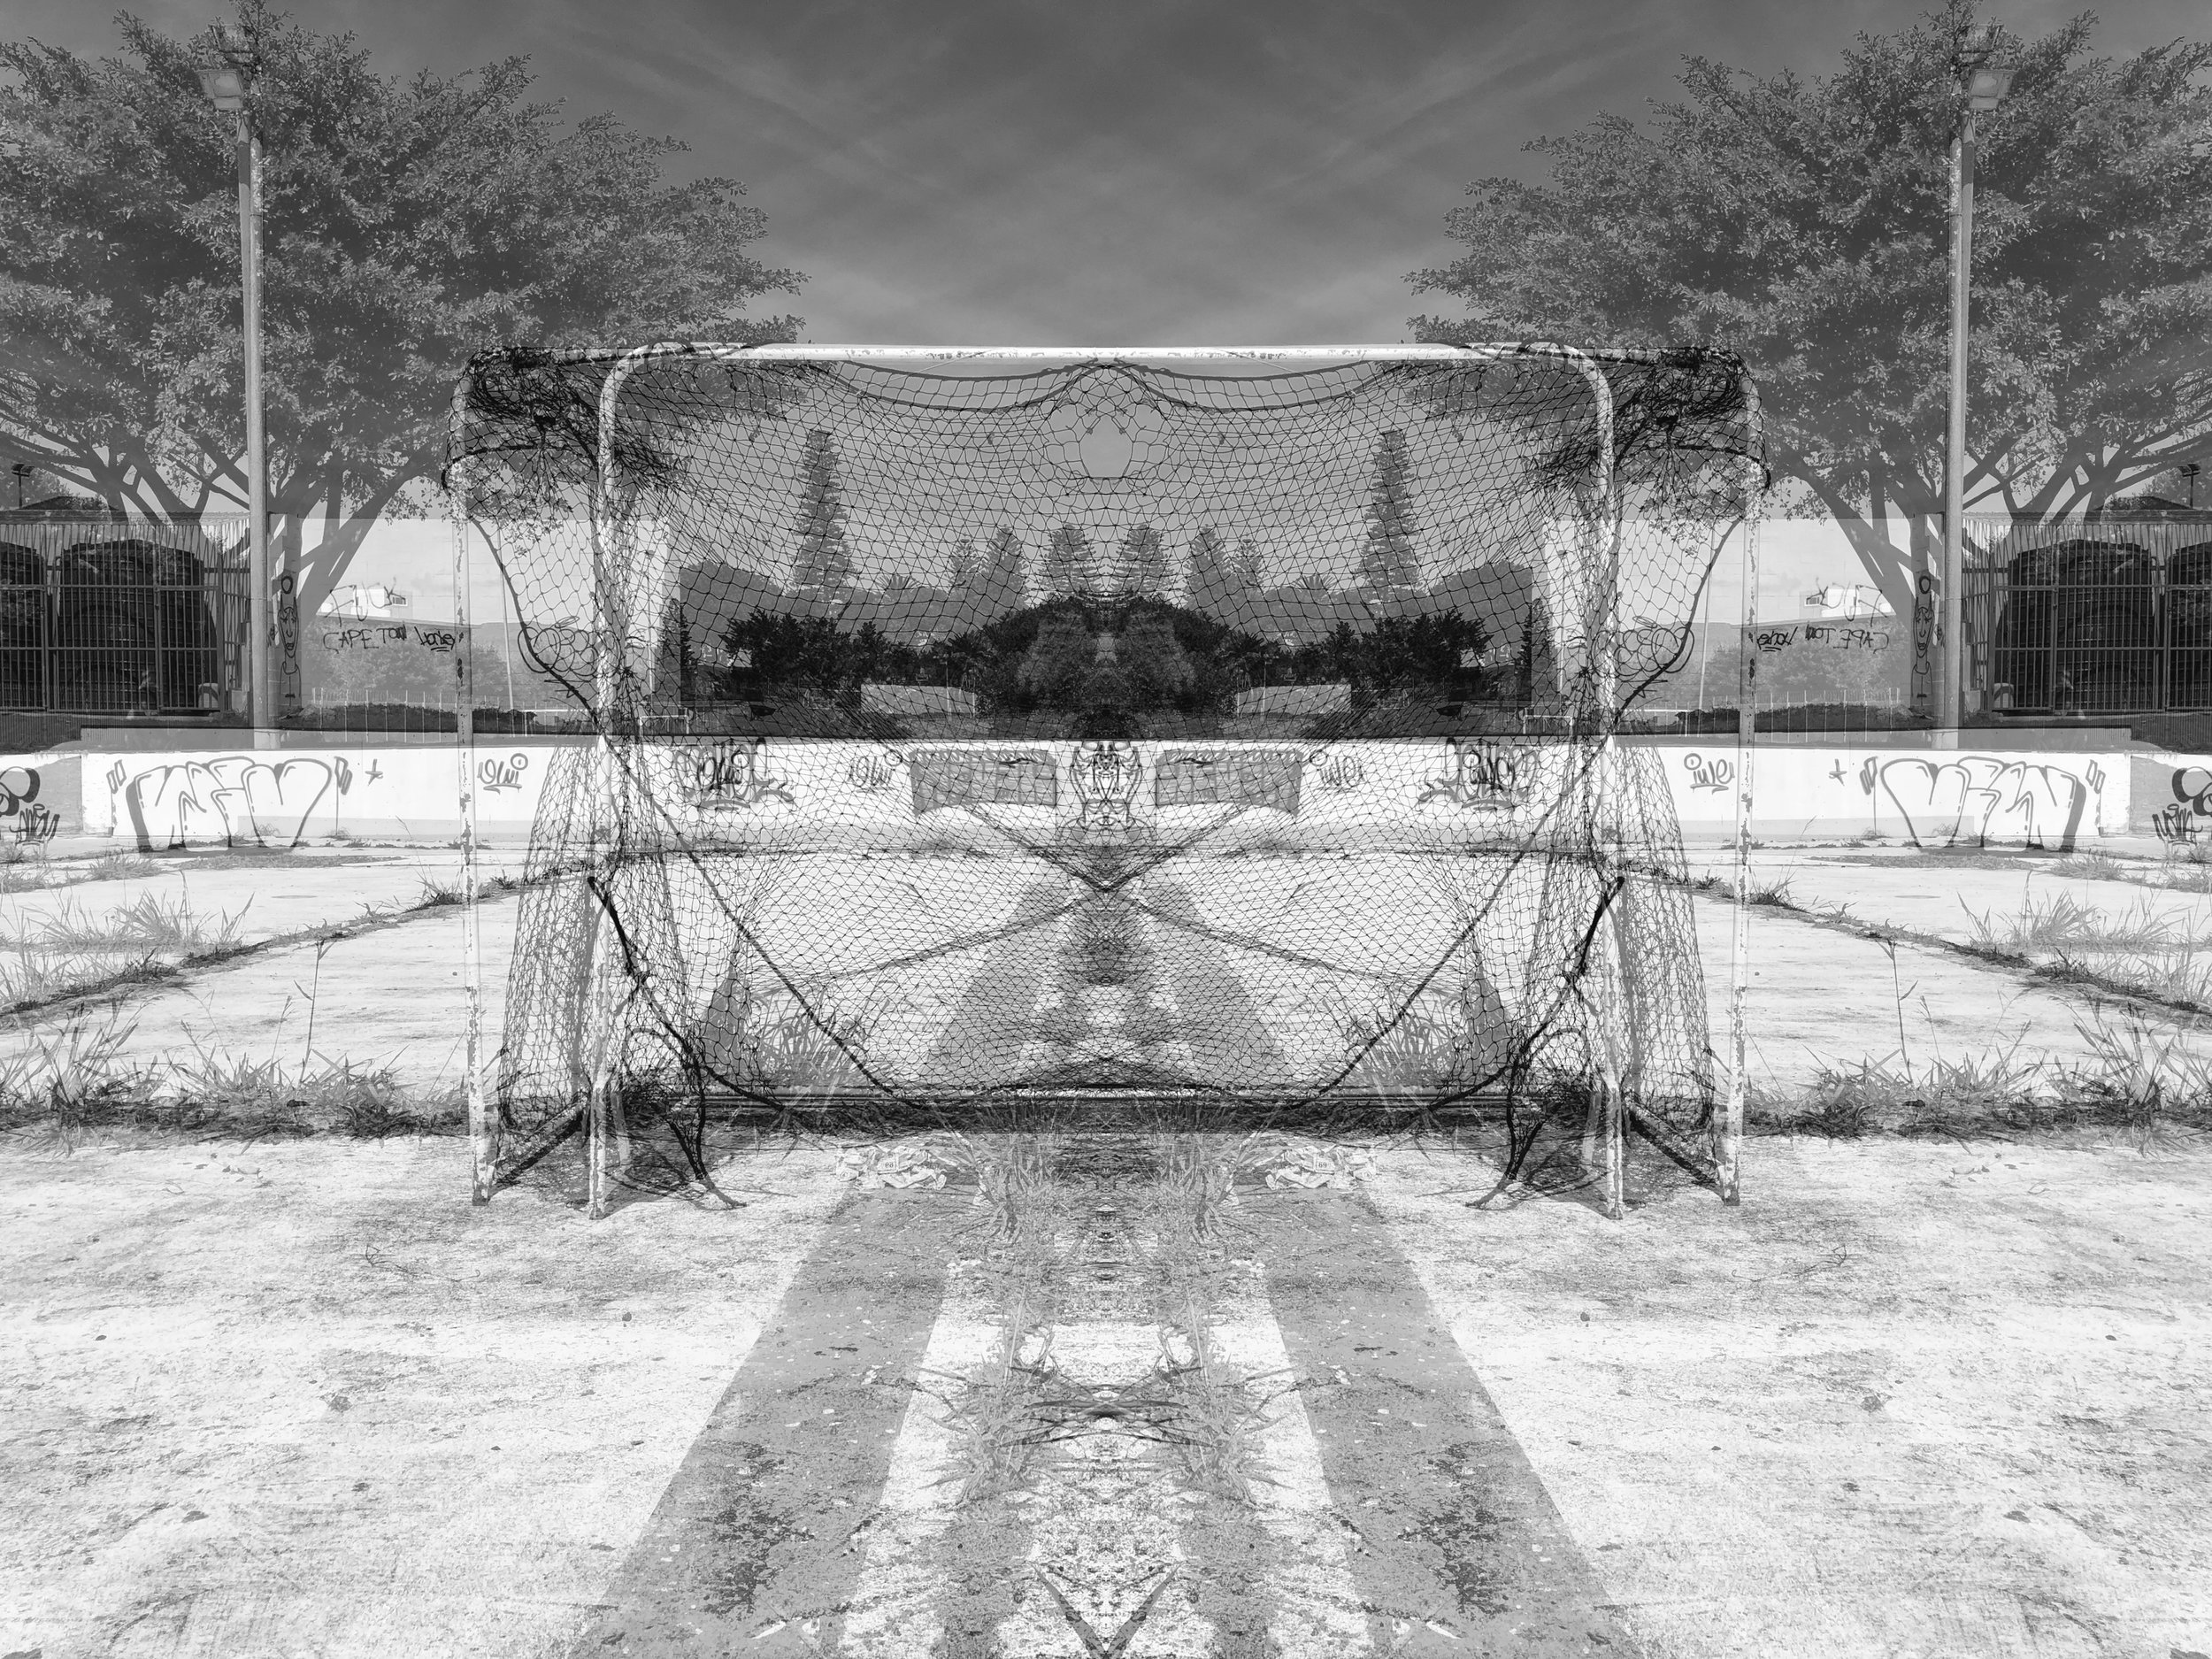 Playground , Rosebank, 2019  Series:  27-21 Cape Town Calling    Silver print Dibond  360 x 480mm  Edition 3 + 1 AP  Signed, dated and numbered in lower margin; artist's stamp on verso  © Alastair Whitton  Acquisitions / enquiries: gallery@barnardgallery.com